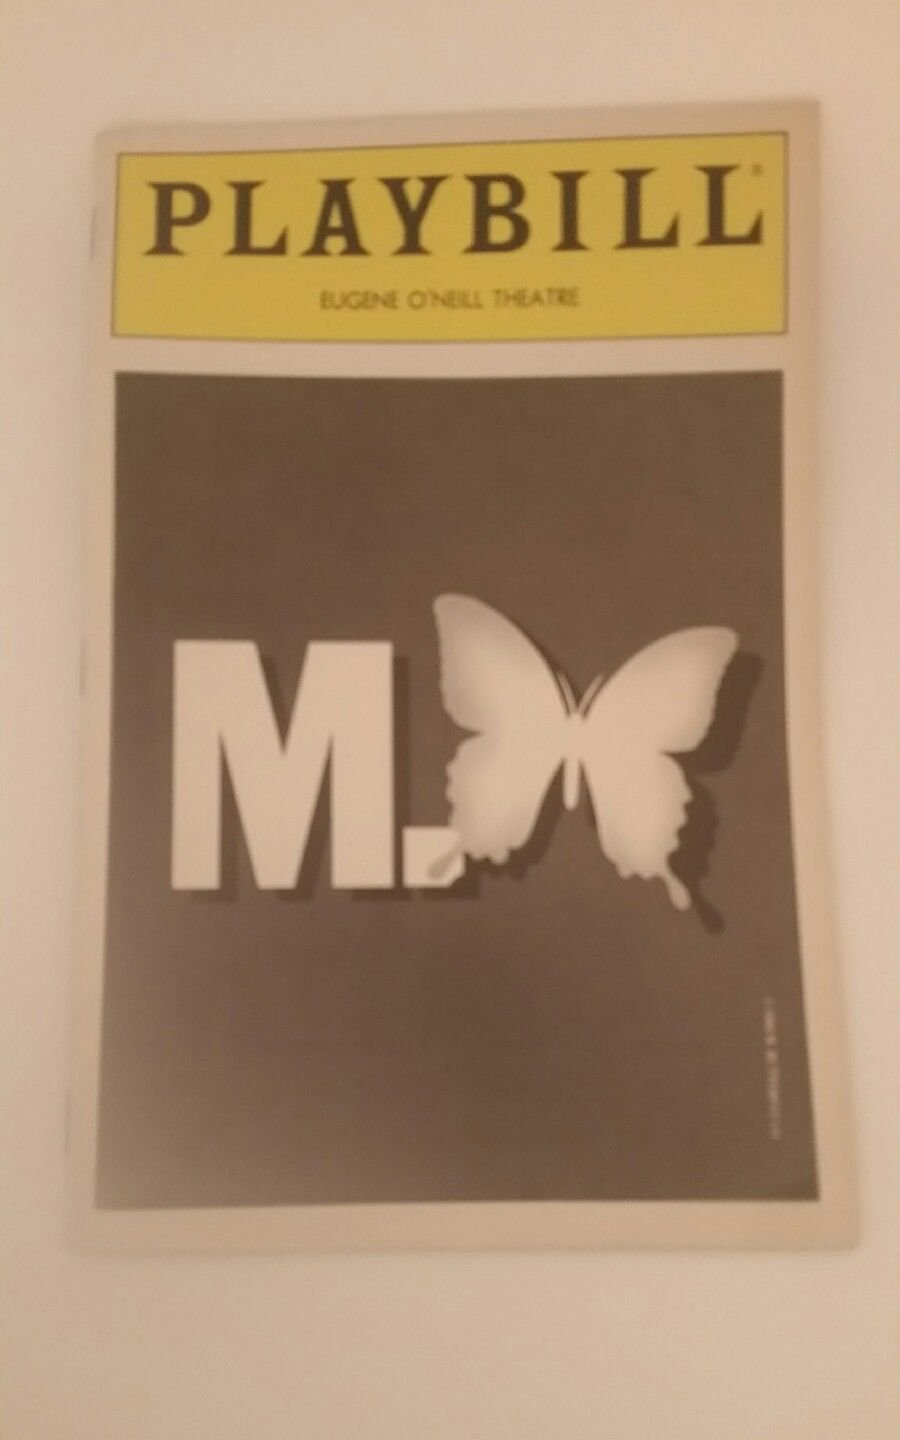 Madame Butterfly Playbill Eugene O'Neill Theatre with Jul 29, 1989 Stub, Signed